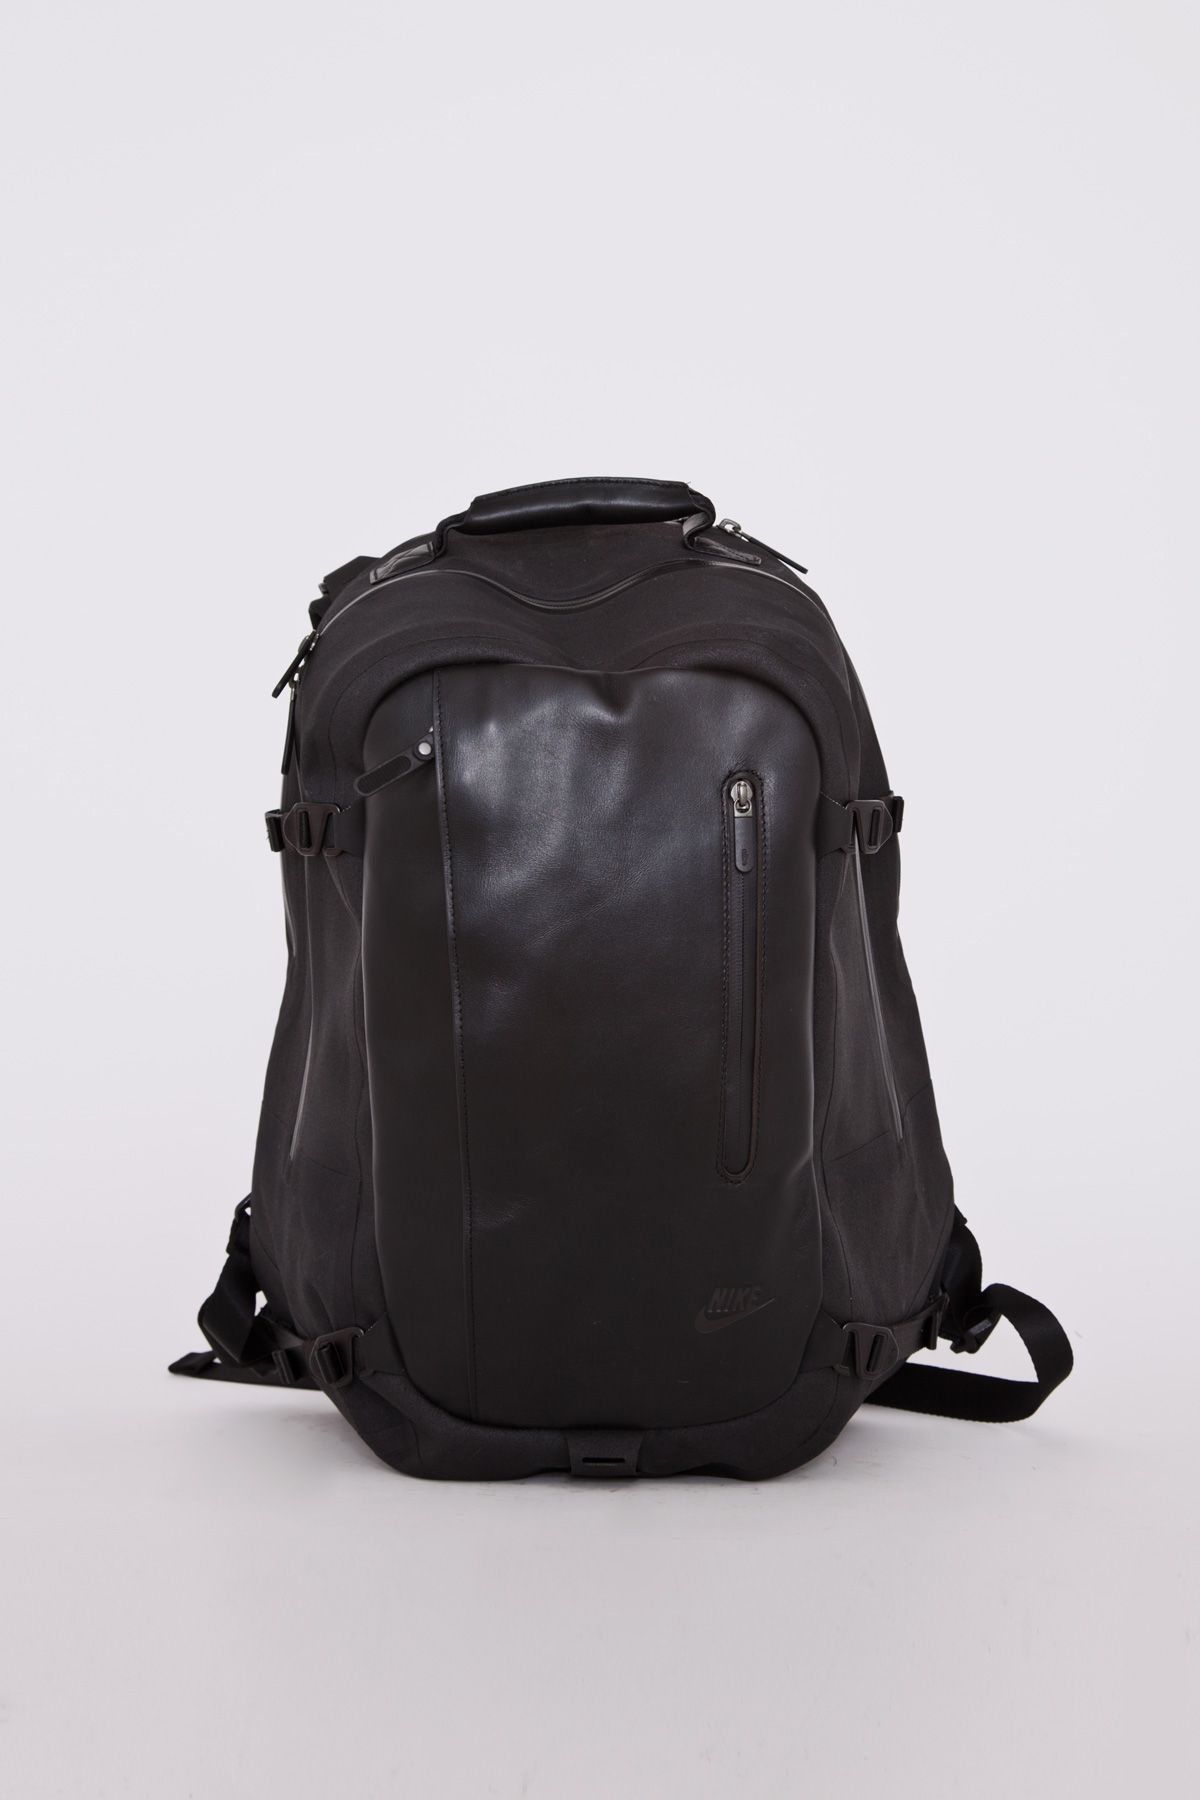 Casual Bags · The latest version of the Nike Chayenne backpacks. Hardcover  nylon 9c010f42a6877